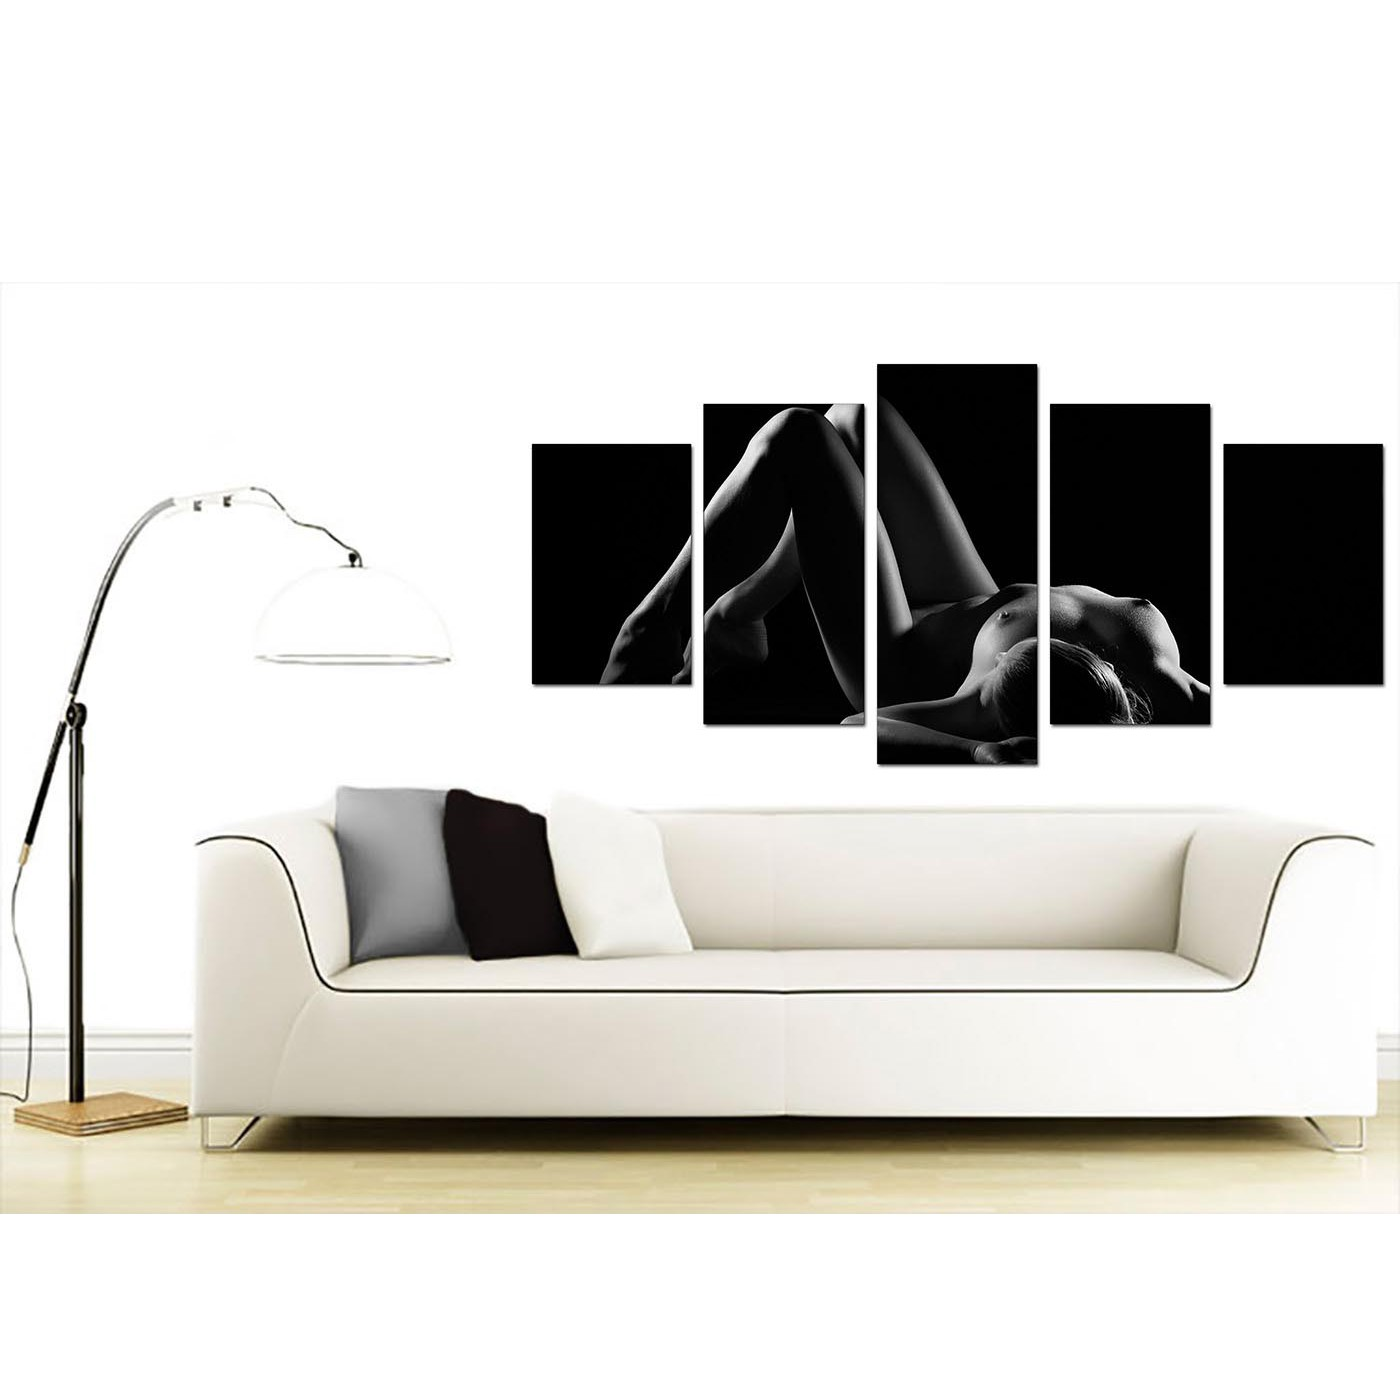 Extra Large Bedroom Woman Canvas Prints UK 5 Panel in Black & White